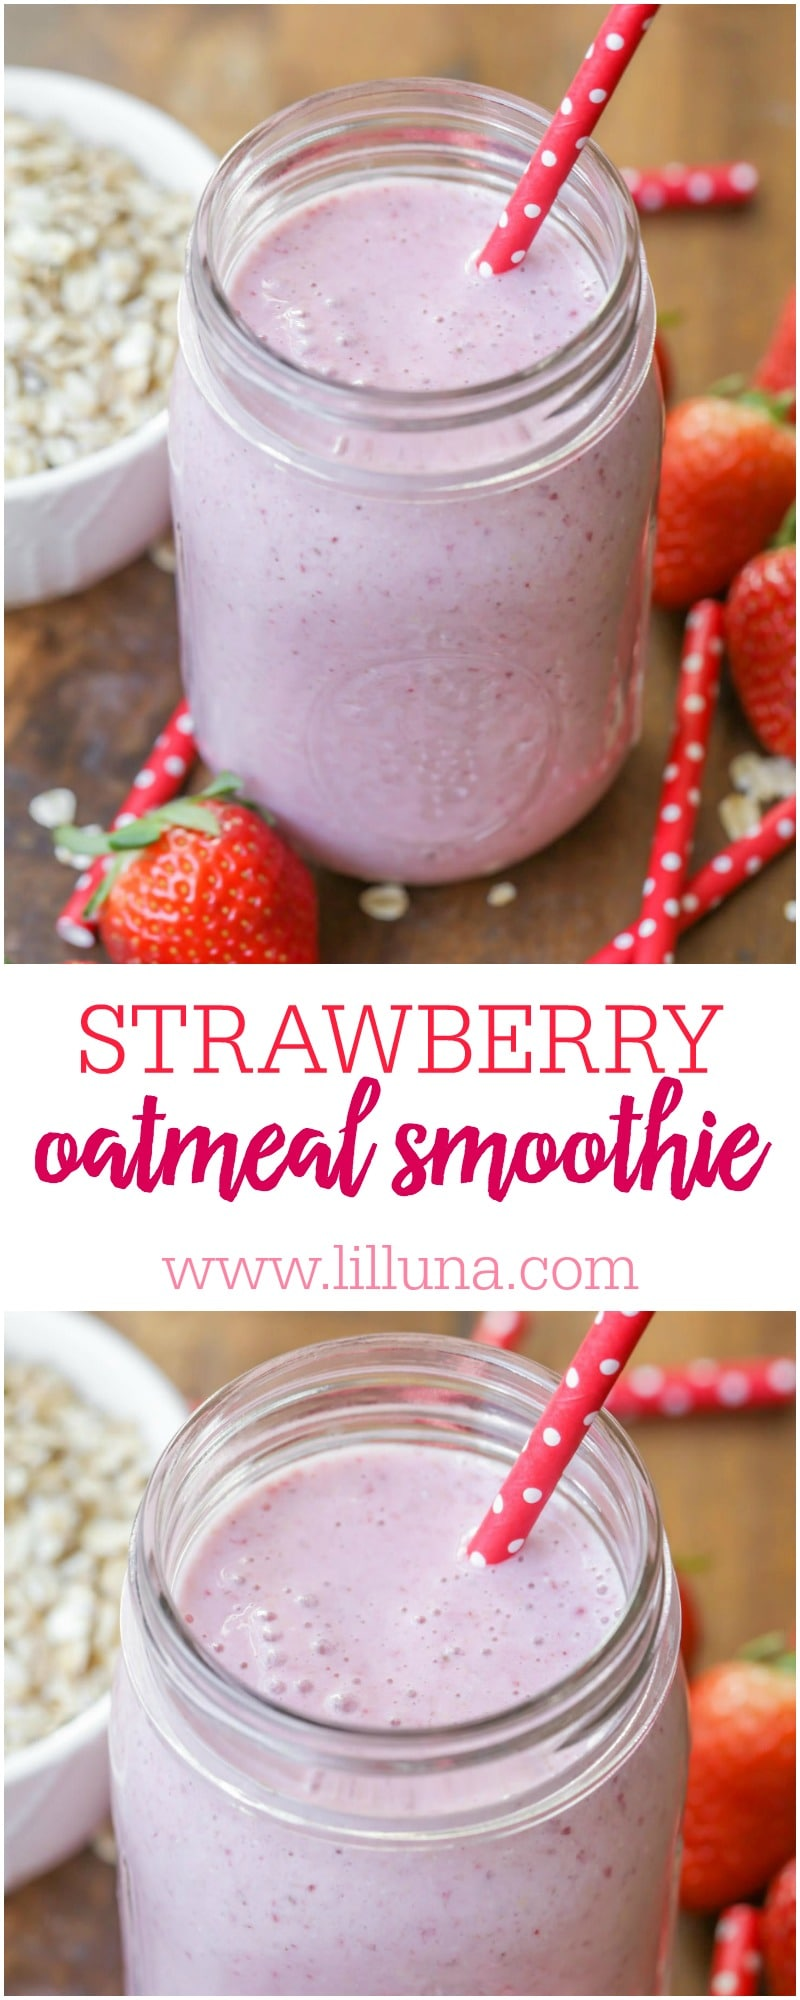 A simple and delicious Strawberry Smoothie recipe - filled with oats, banana, strawberries and milk!